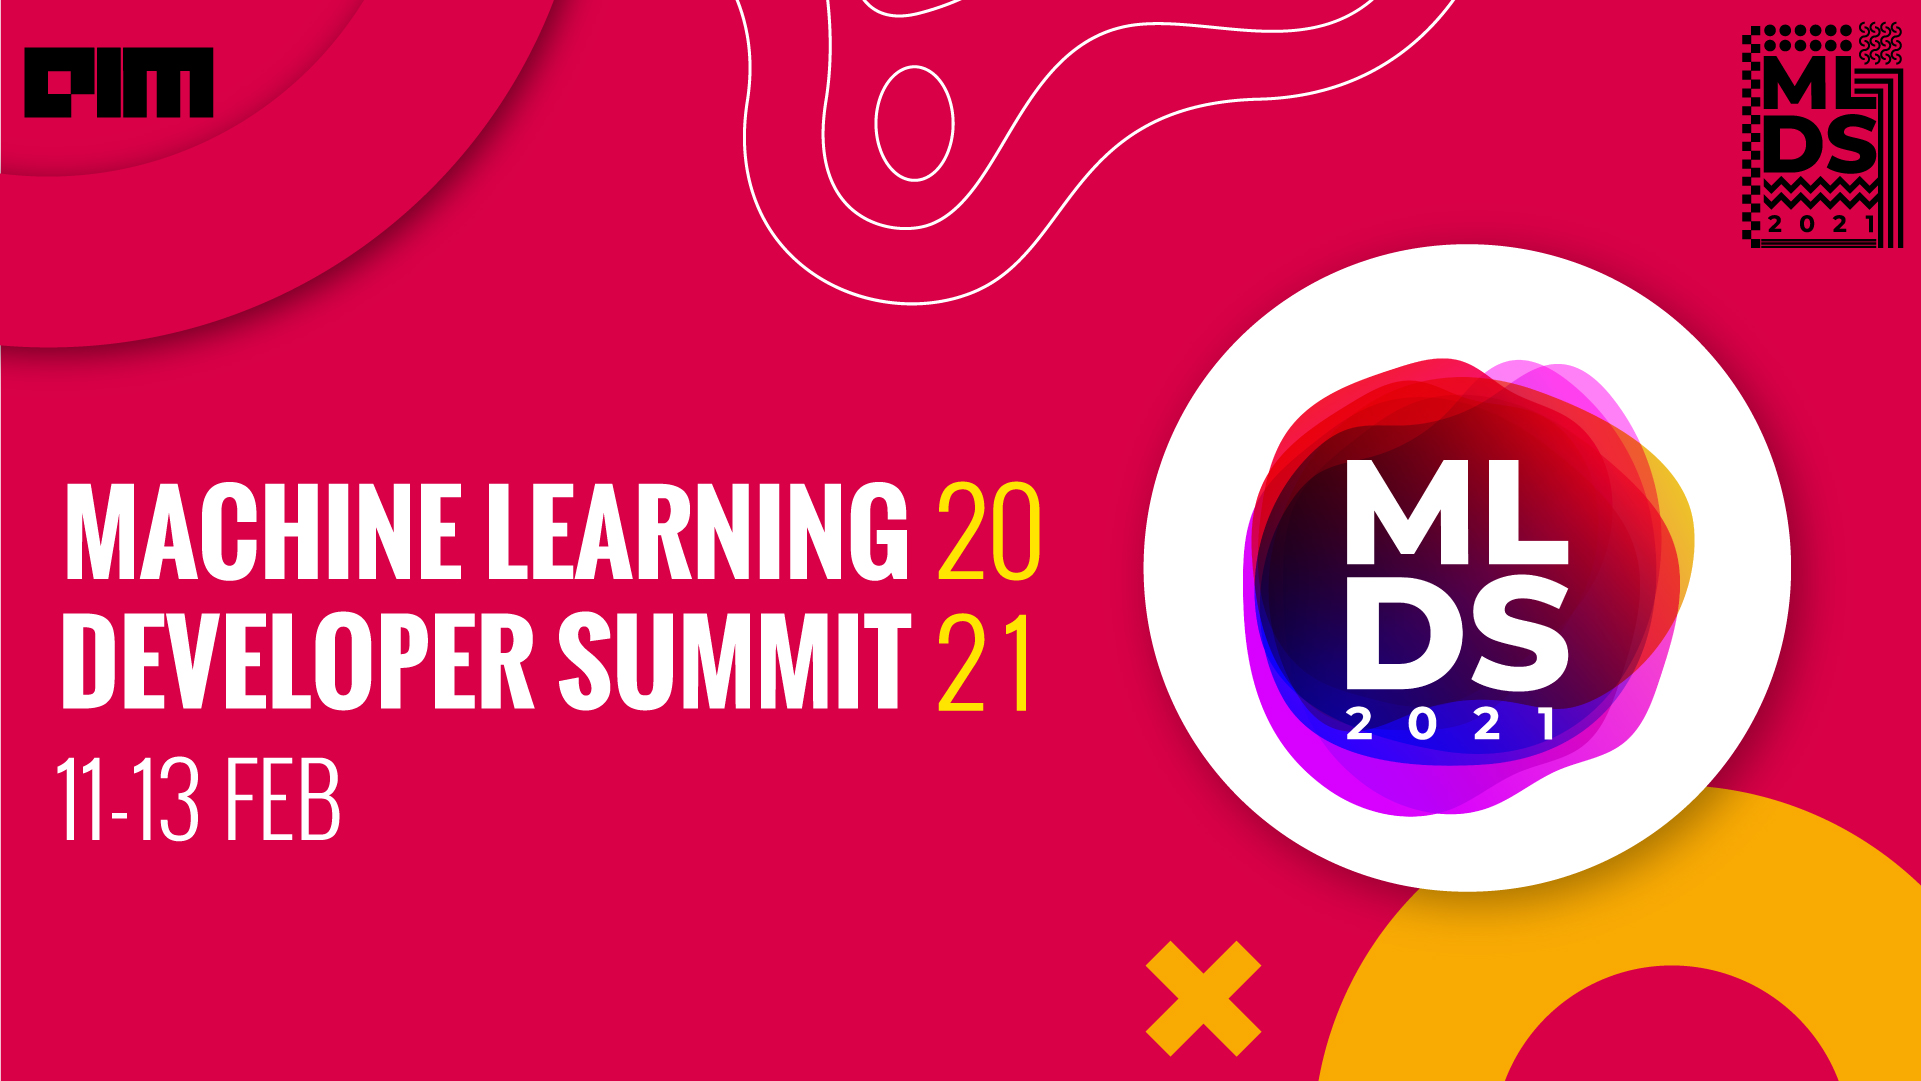 Third Edition Of Machine Learning Developers Summit Announced - MLDS 2021